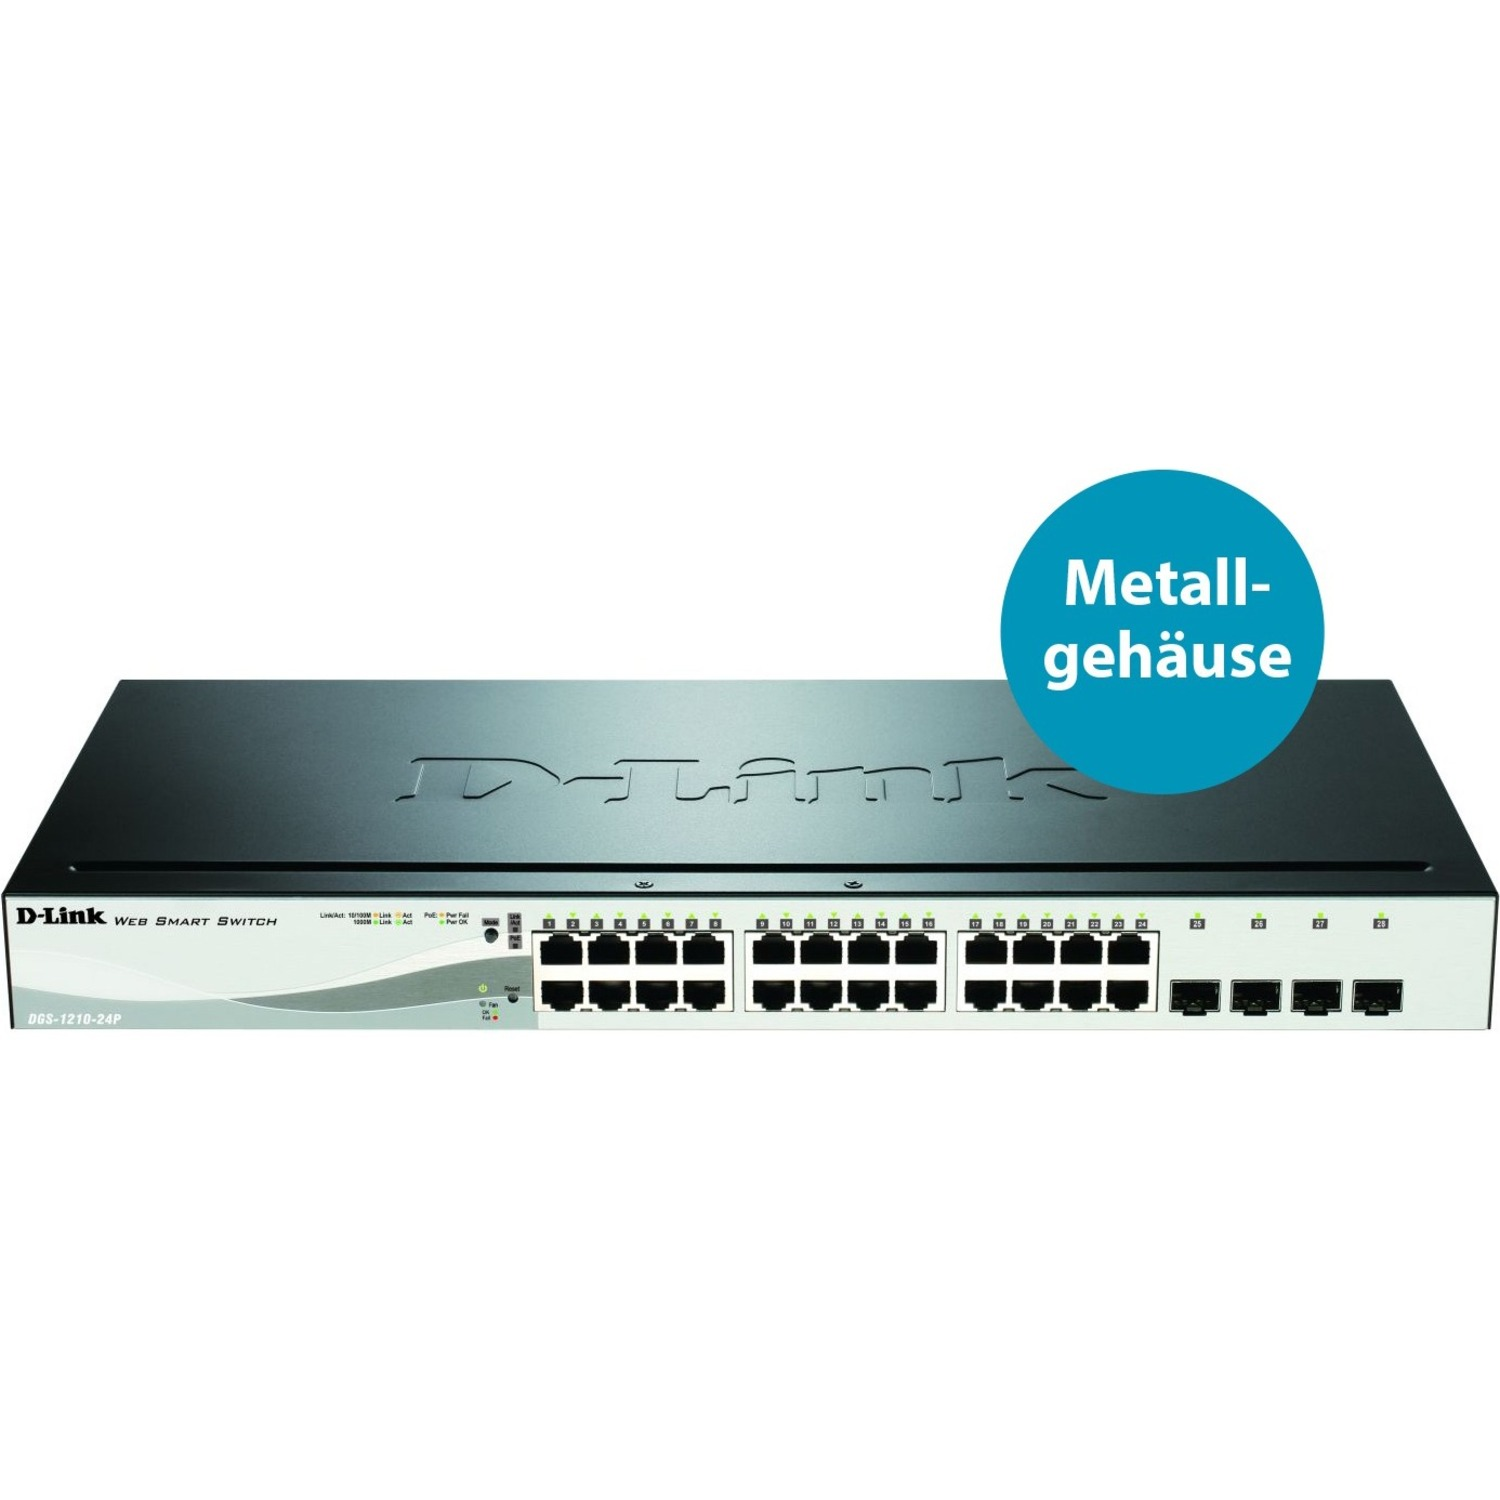 D-Link DGS-1210-24P 24 Ports Manageable Ethernet Switch